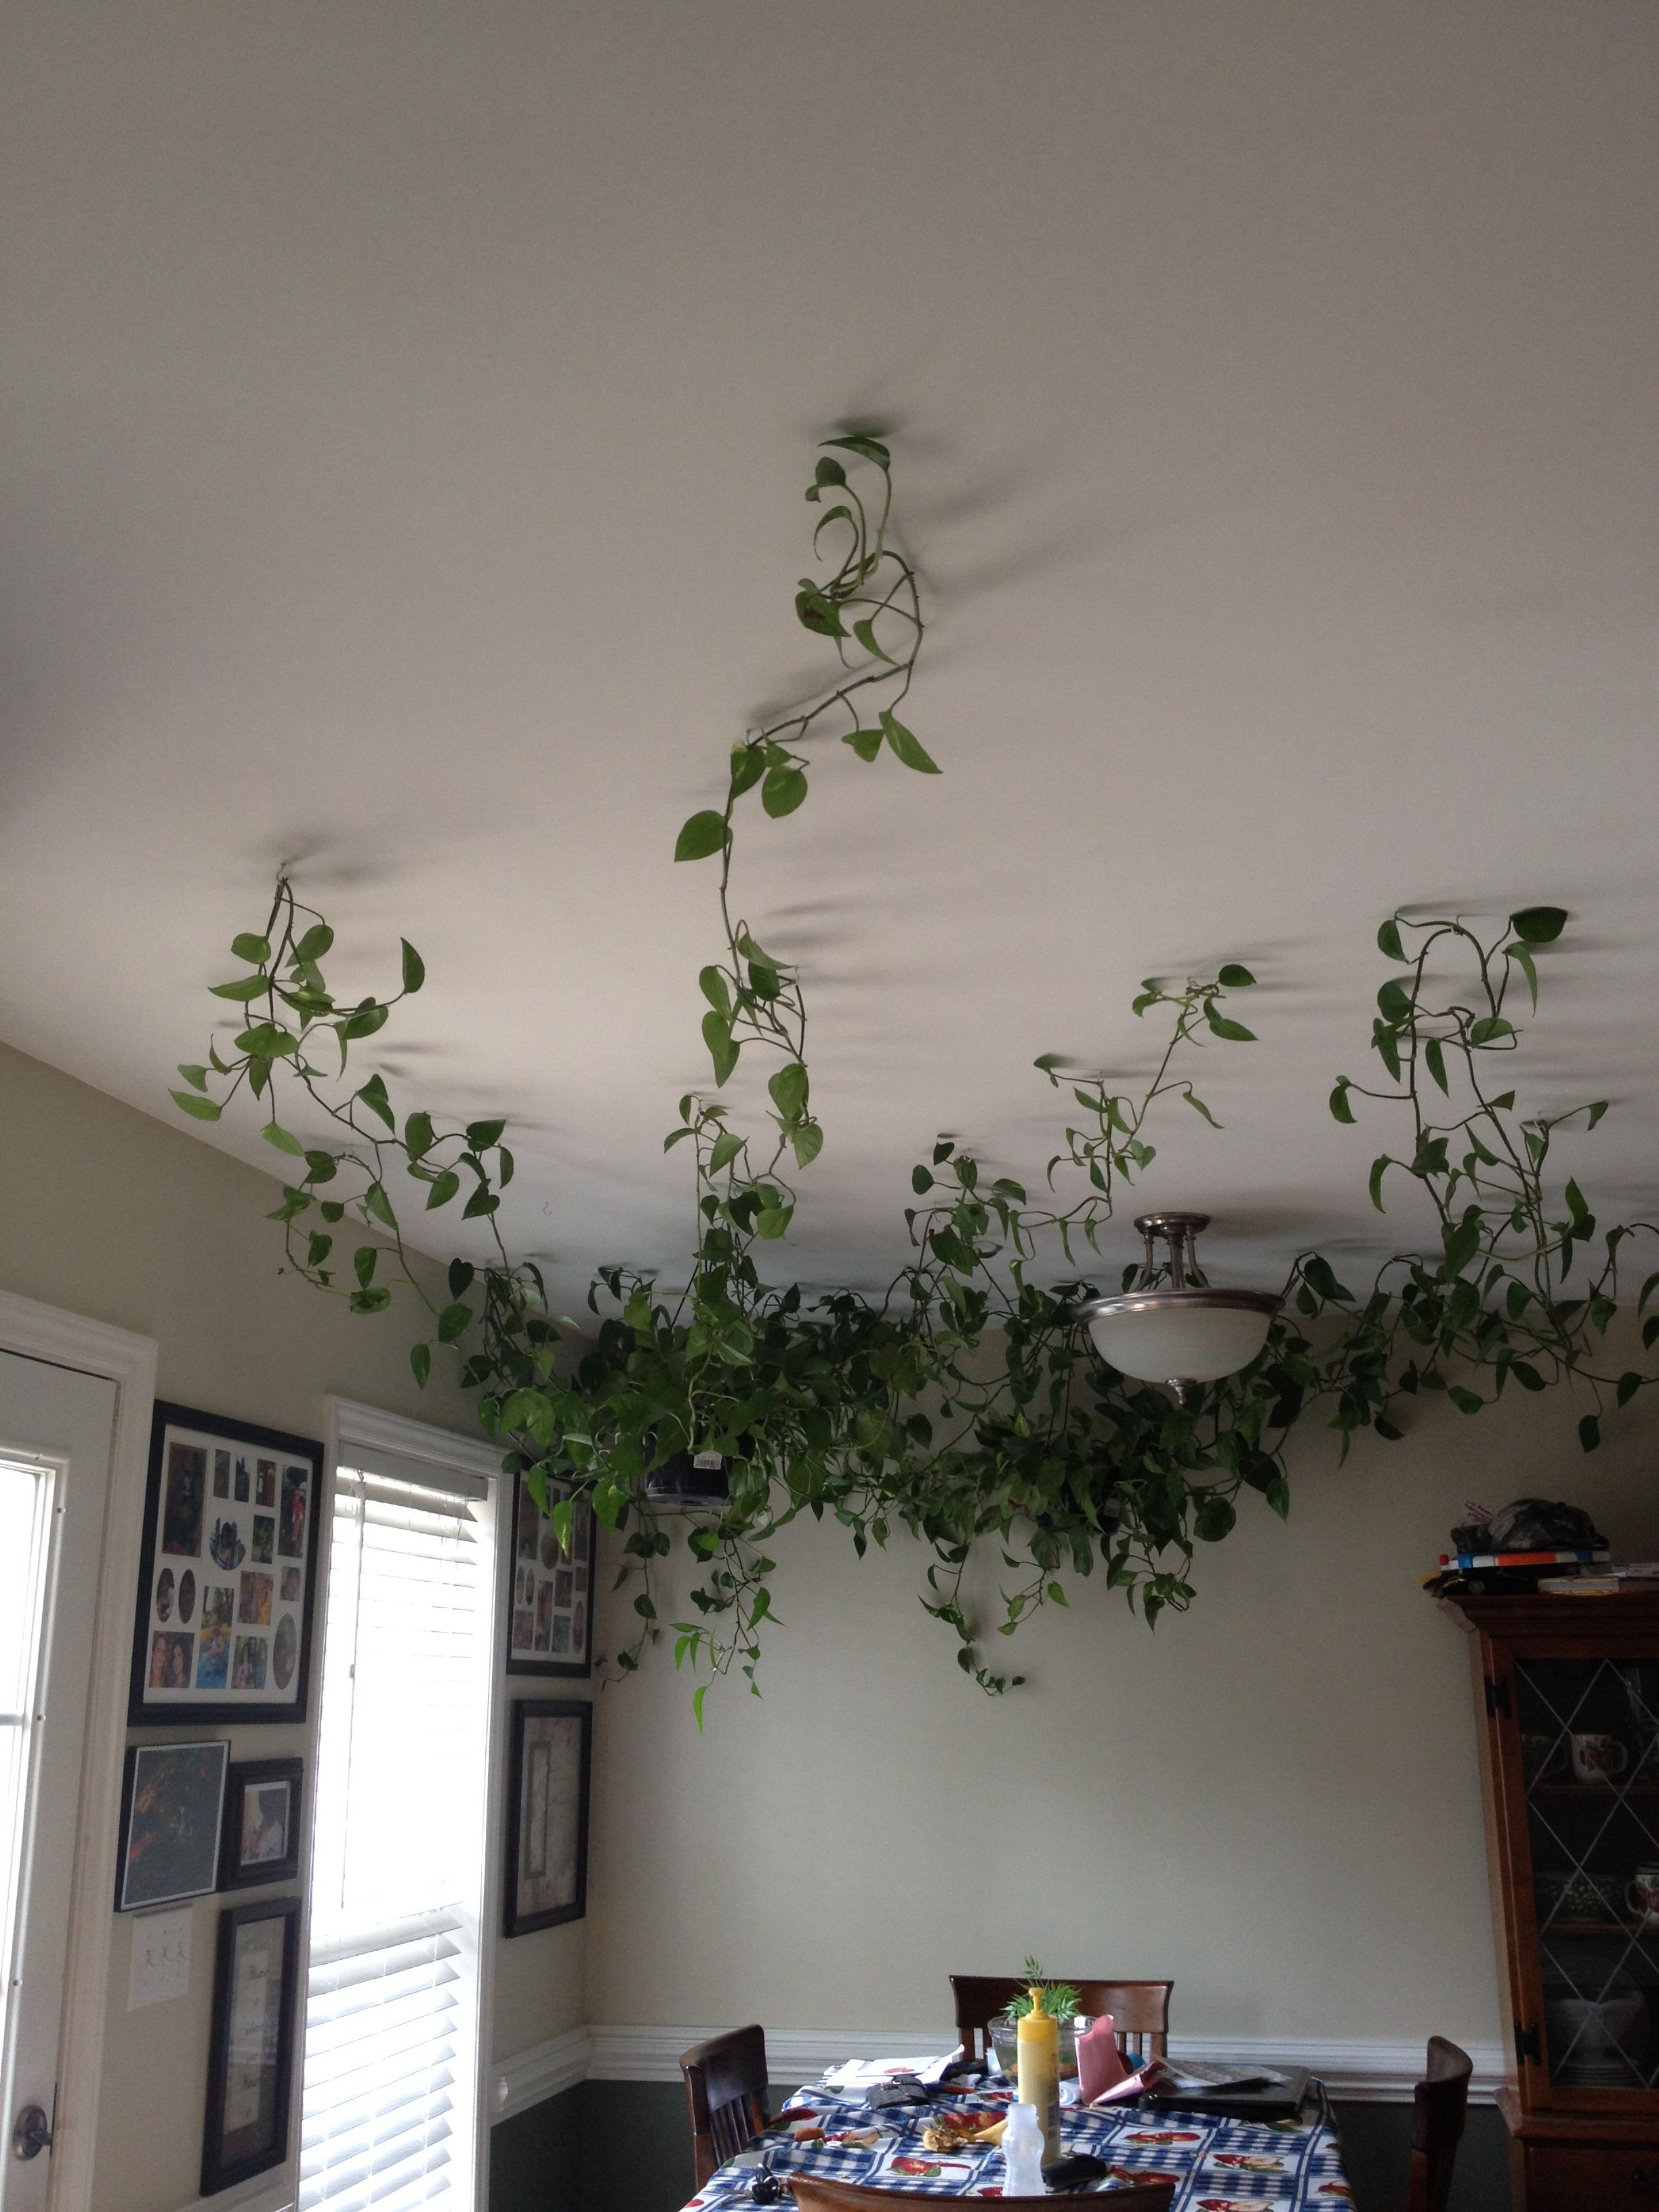 Pin By Kaddie Adams On Cozy Home Feel Fake Plants Decor House Plants Indoor Room With Plants